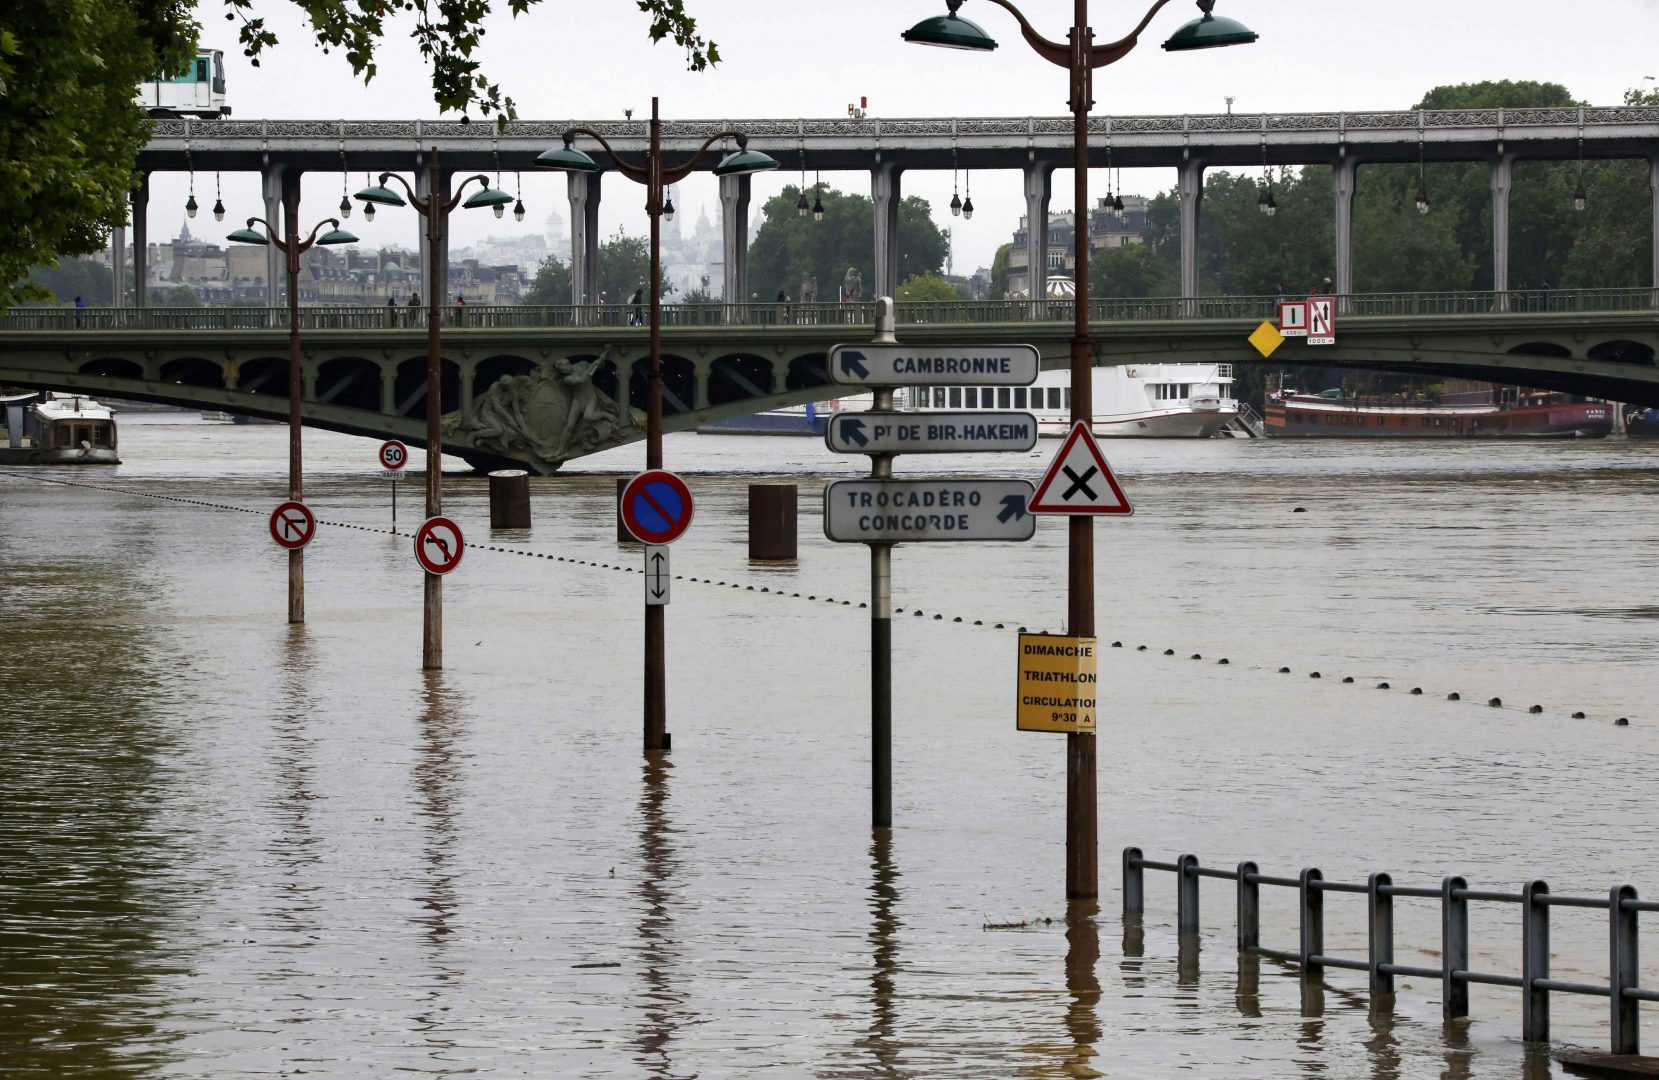 General view of flooding on the banks of the Seine River after days of heavy rainfall in Paris, France, June 2, 2016. REUTERS/Jacky Naegelen